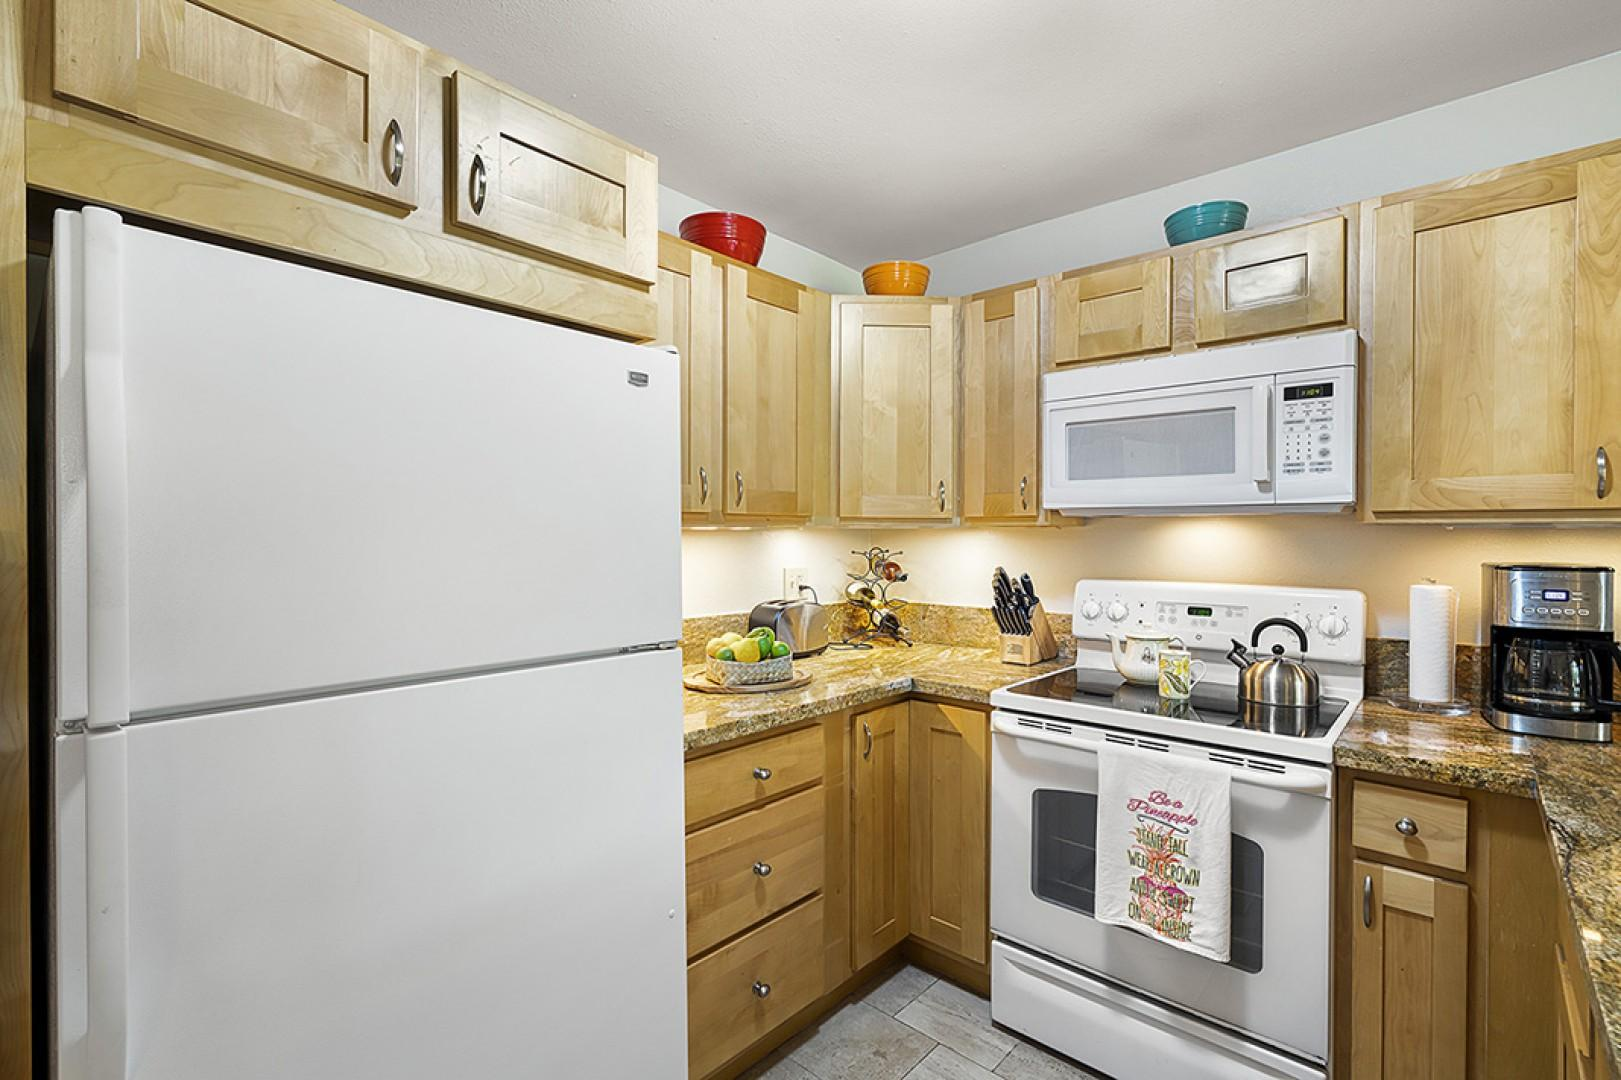 Updated appliances and all the utensils you could need